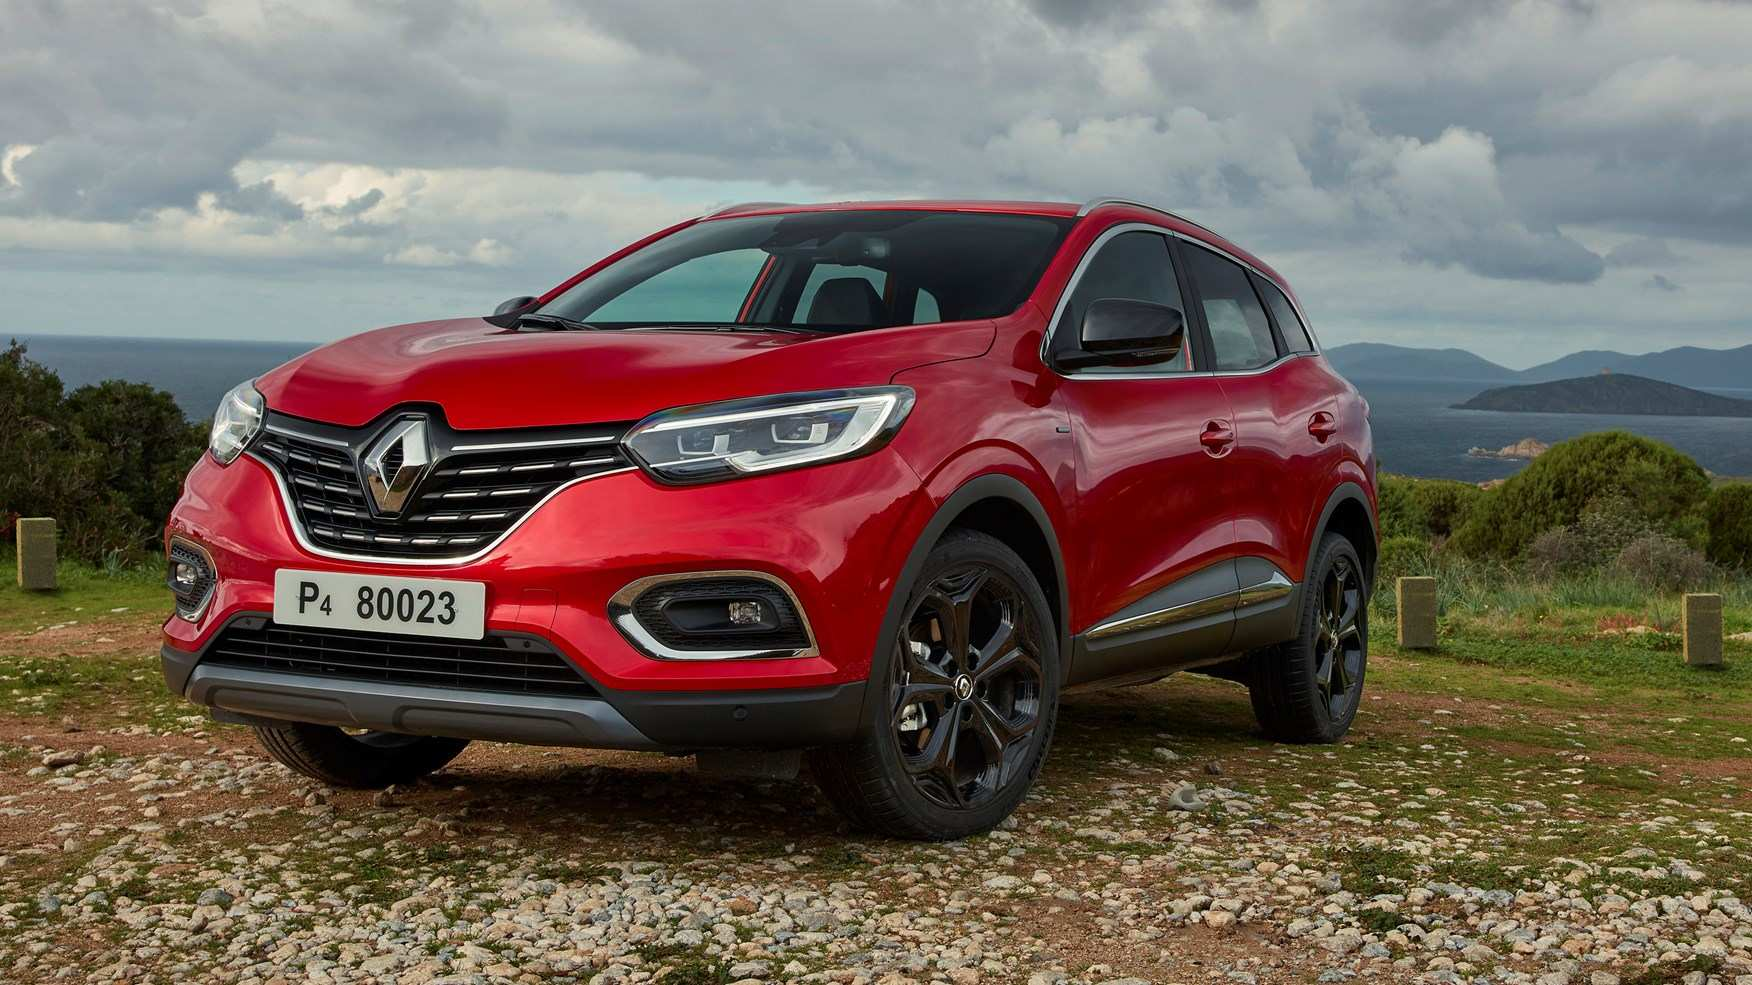 65 Great 2019 Renault Suv Redesign and Concept by 2019 Renault Suv